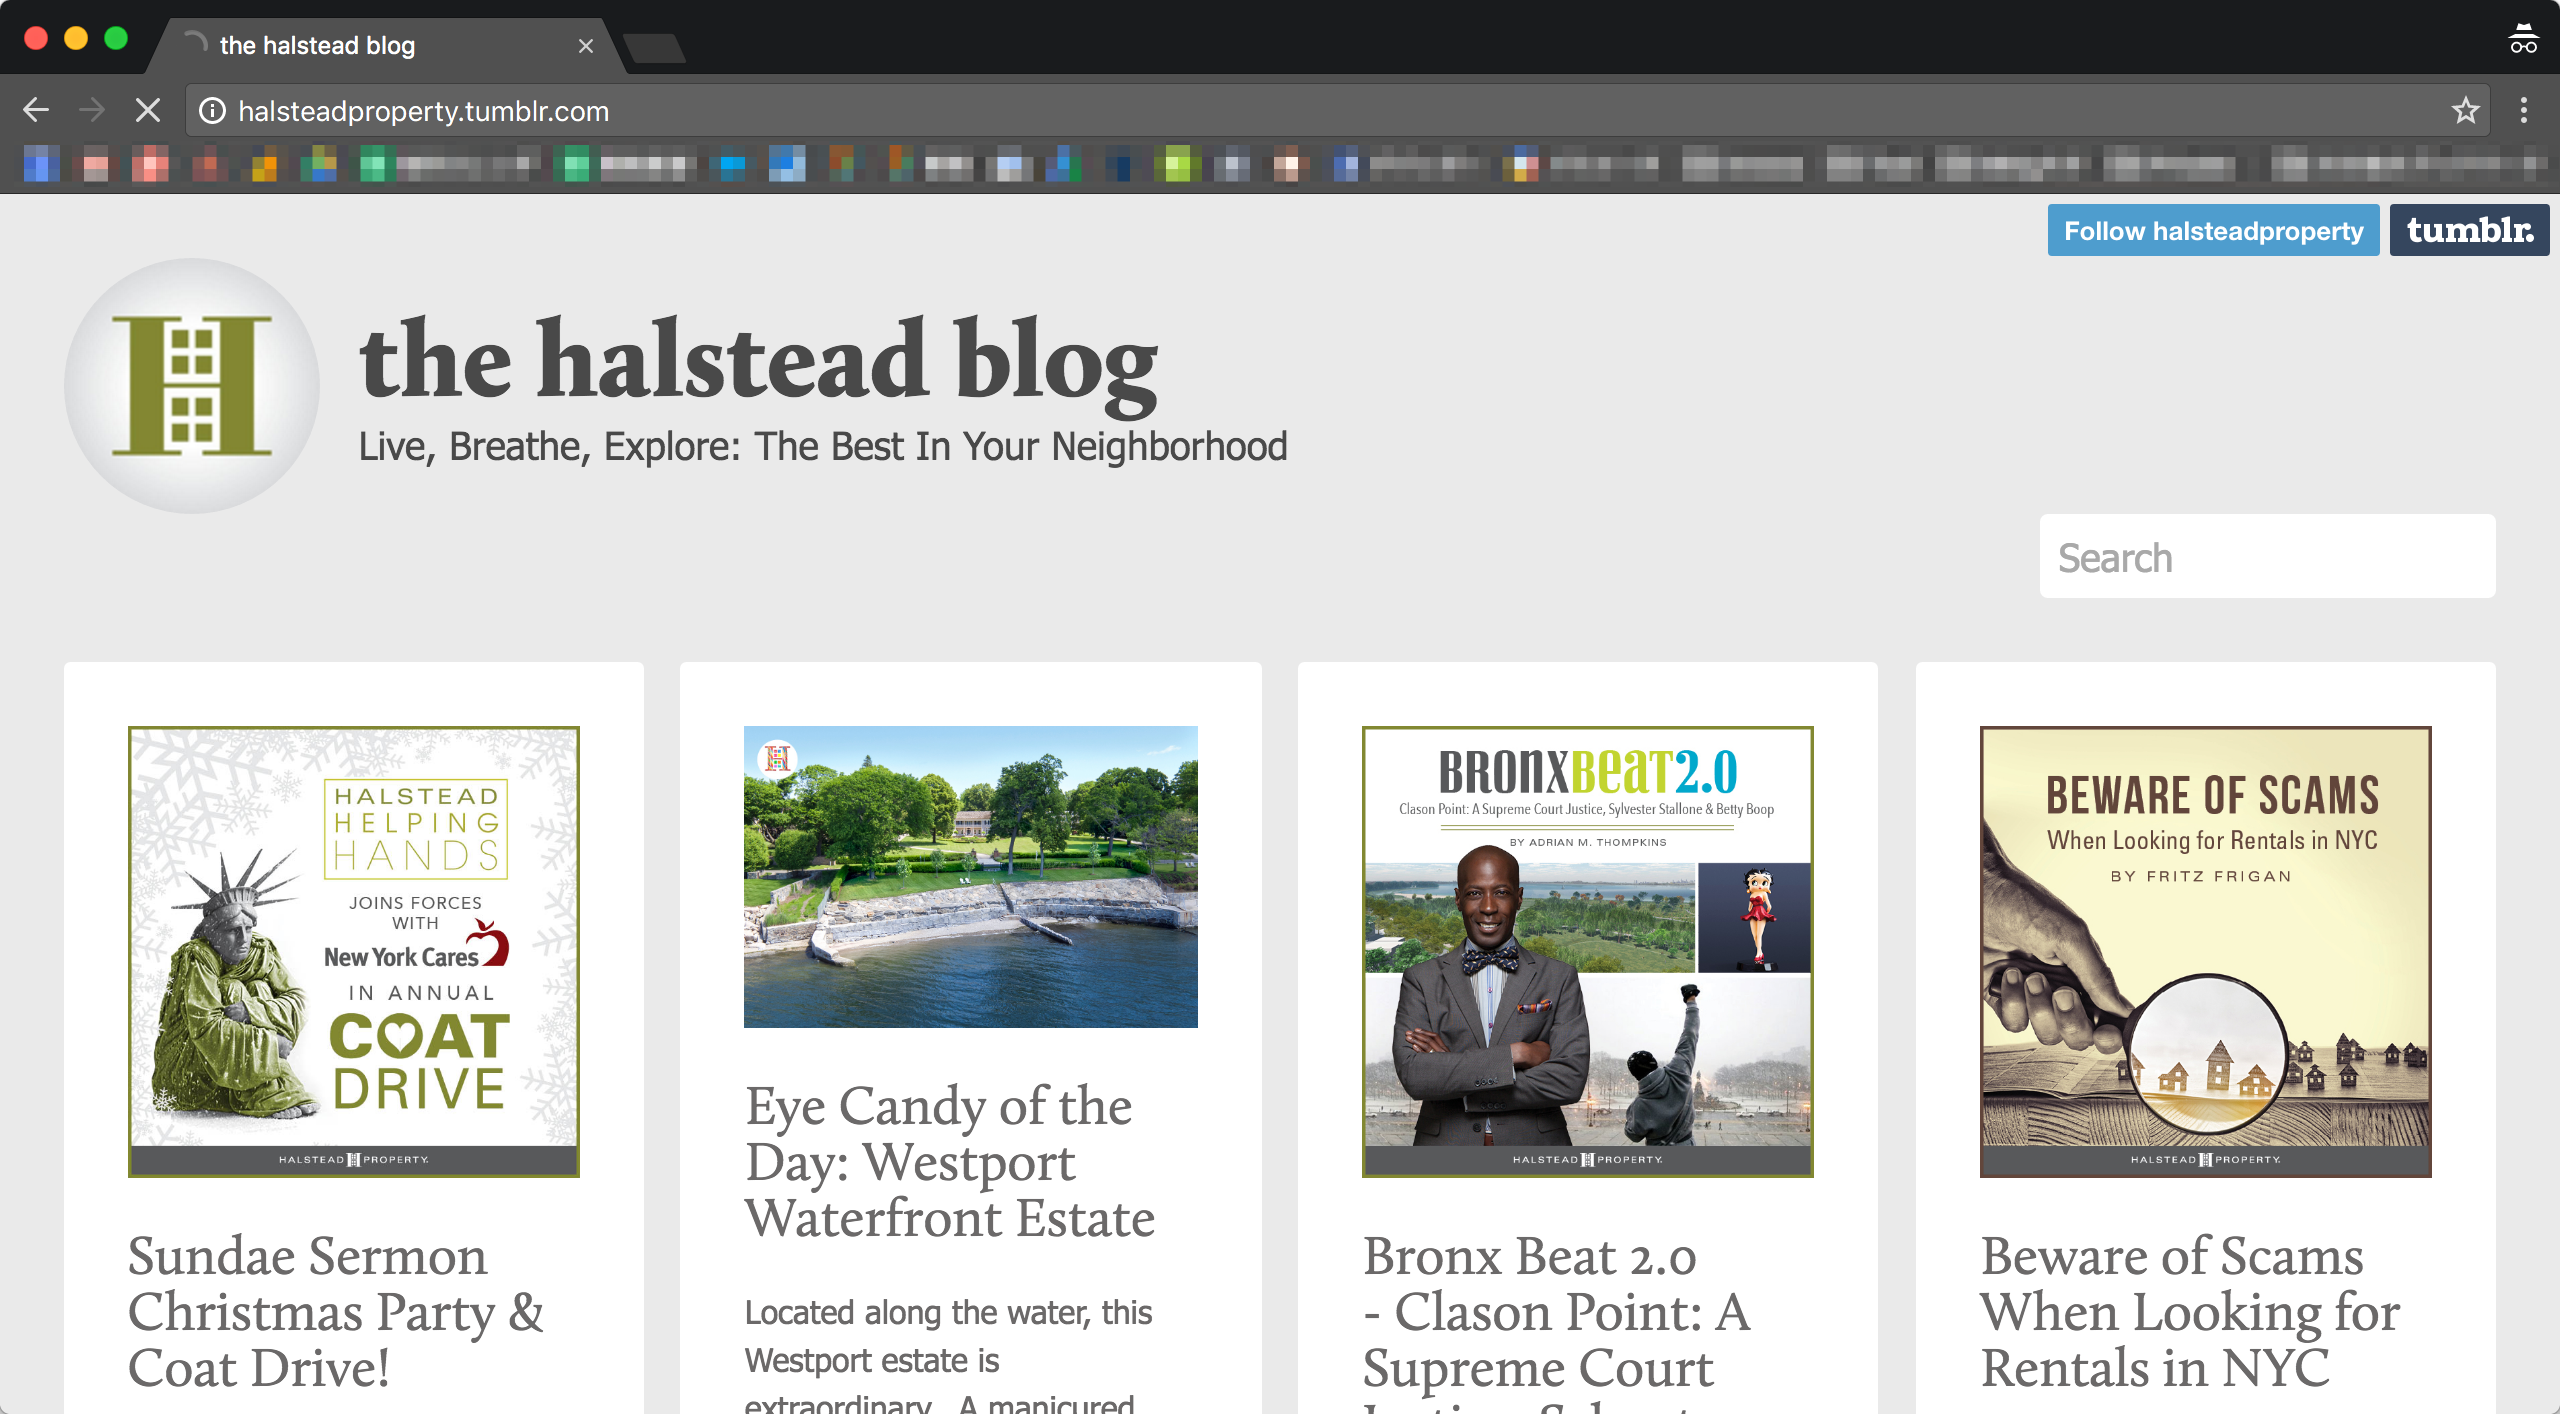 Halstead Property社「the halstead blog」のサイトトップの画像